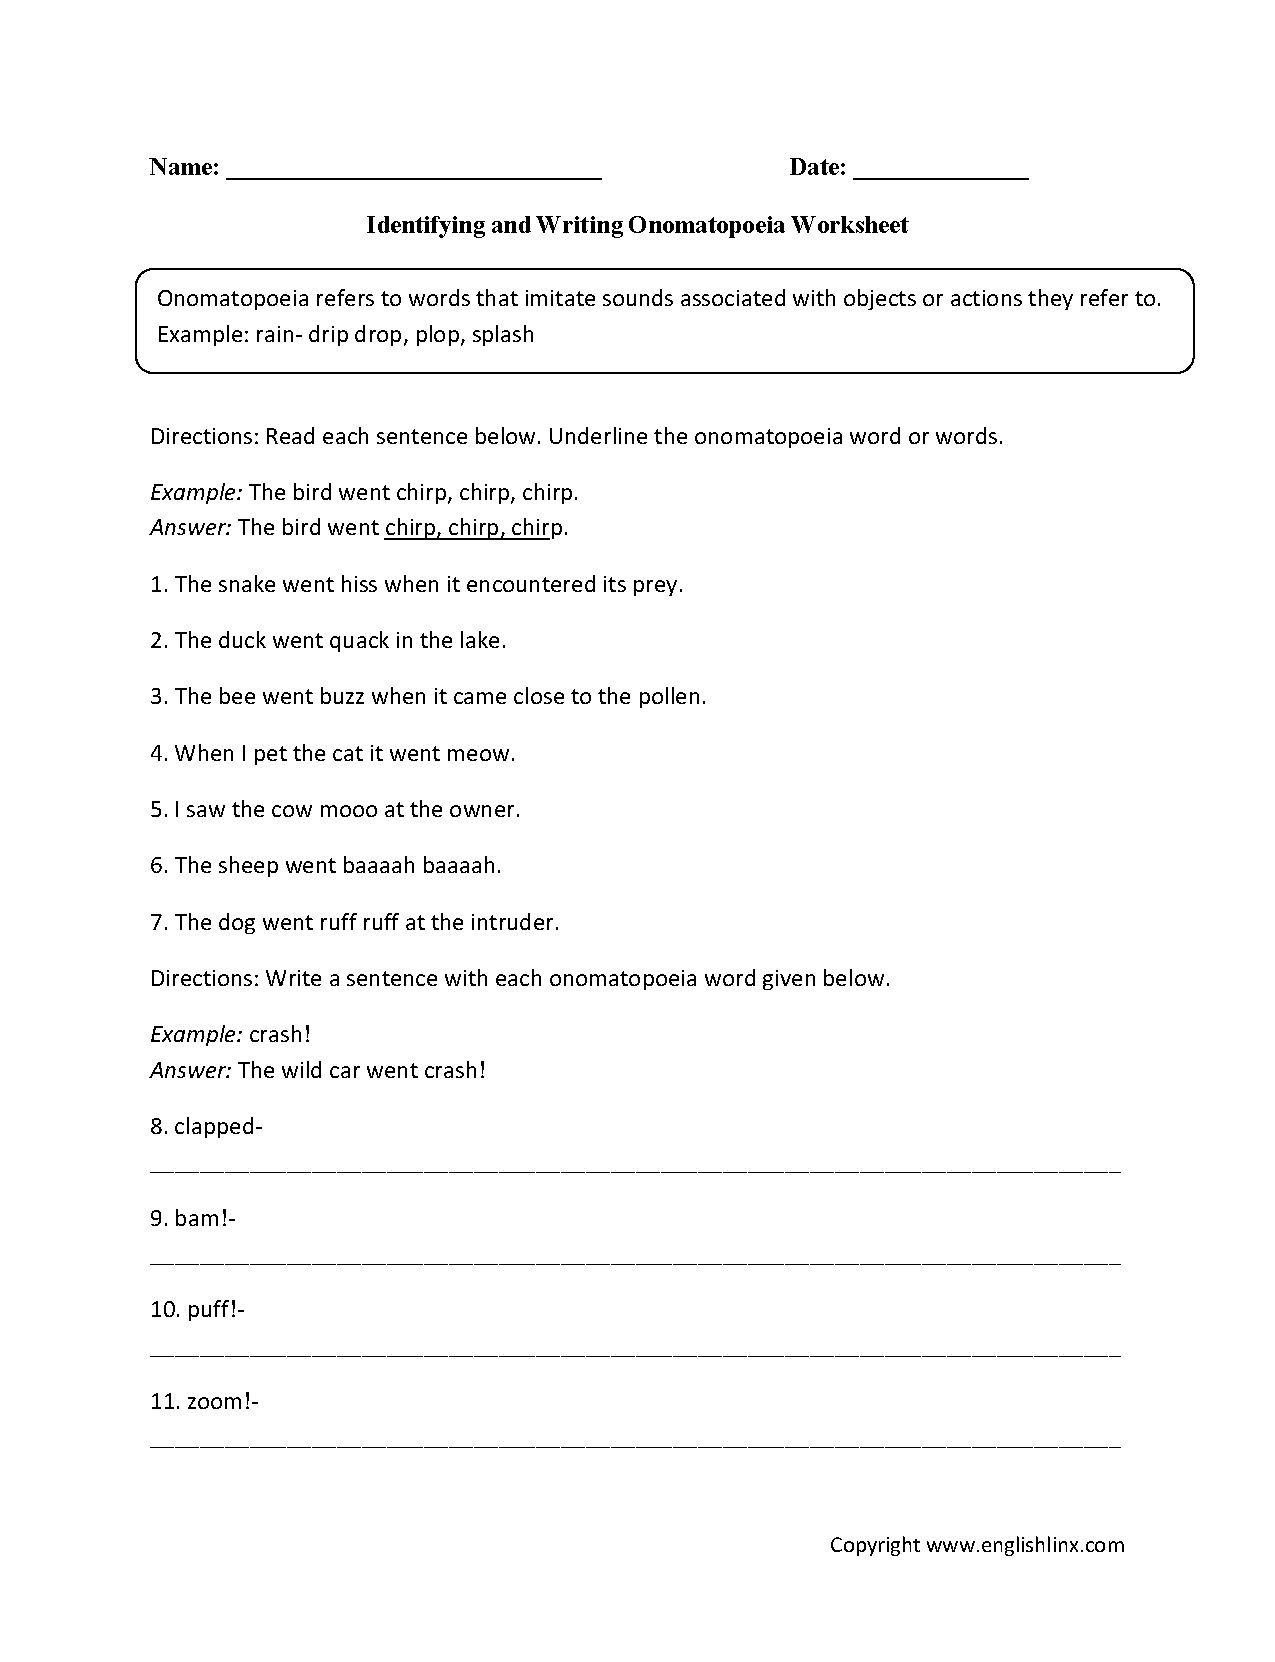 Worksheets Onomatopoeia Worksheet englishlinx com onomatopoeia worksheets worksheet